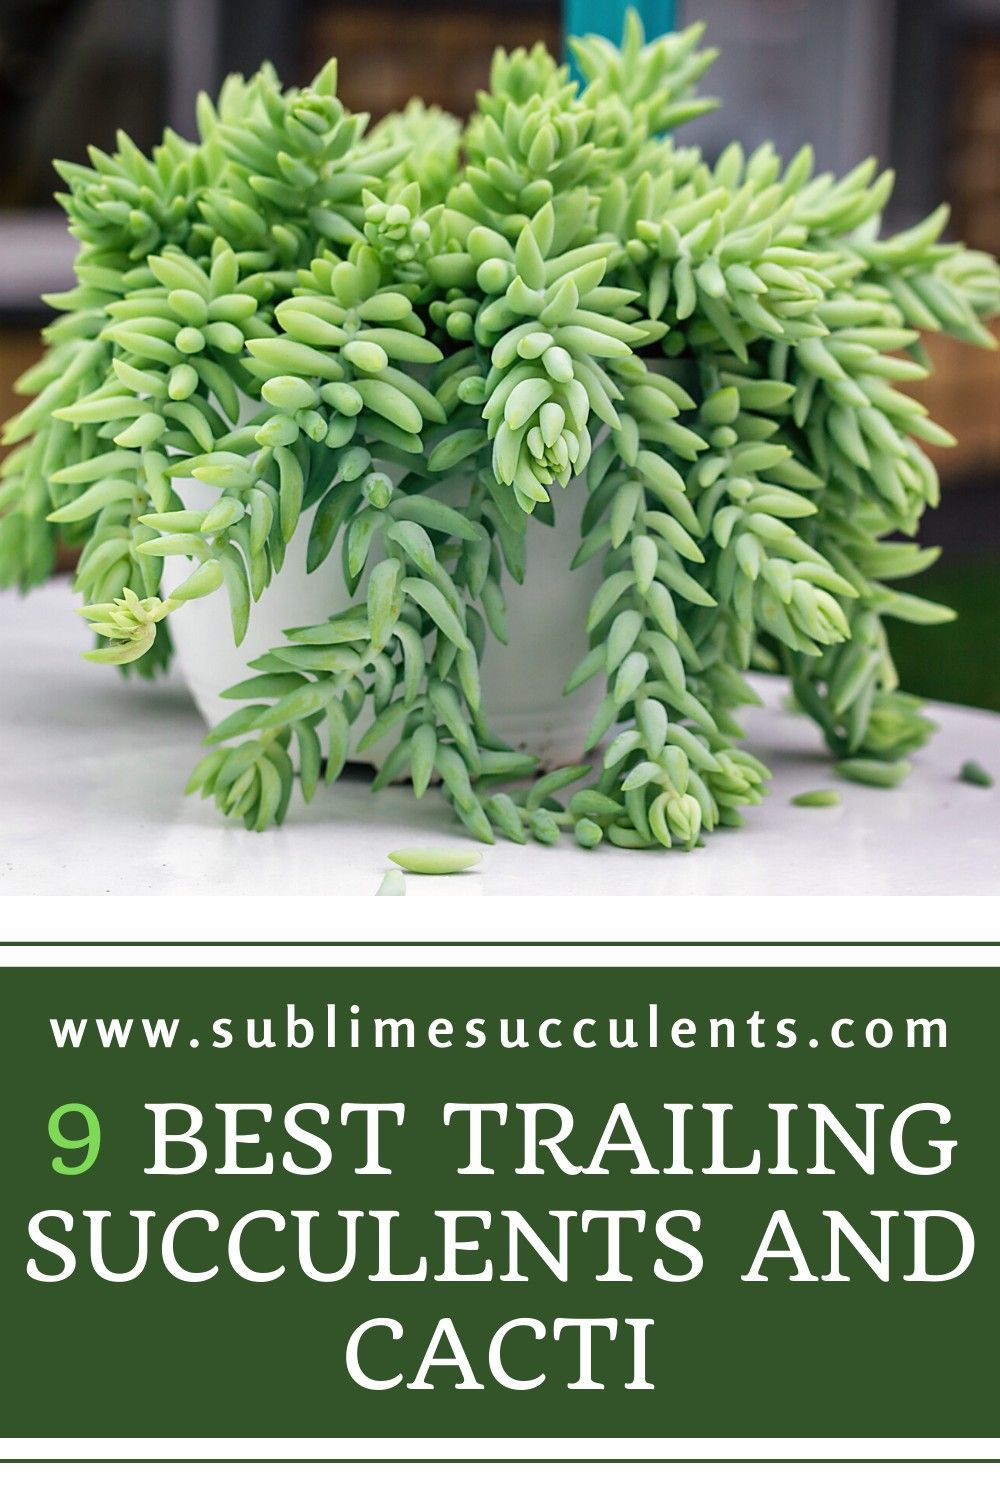 9 Best Trailing Succulents And Cacti In 2020 Succulent Outdoor Succulent Gardening Flowering Succulents